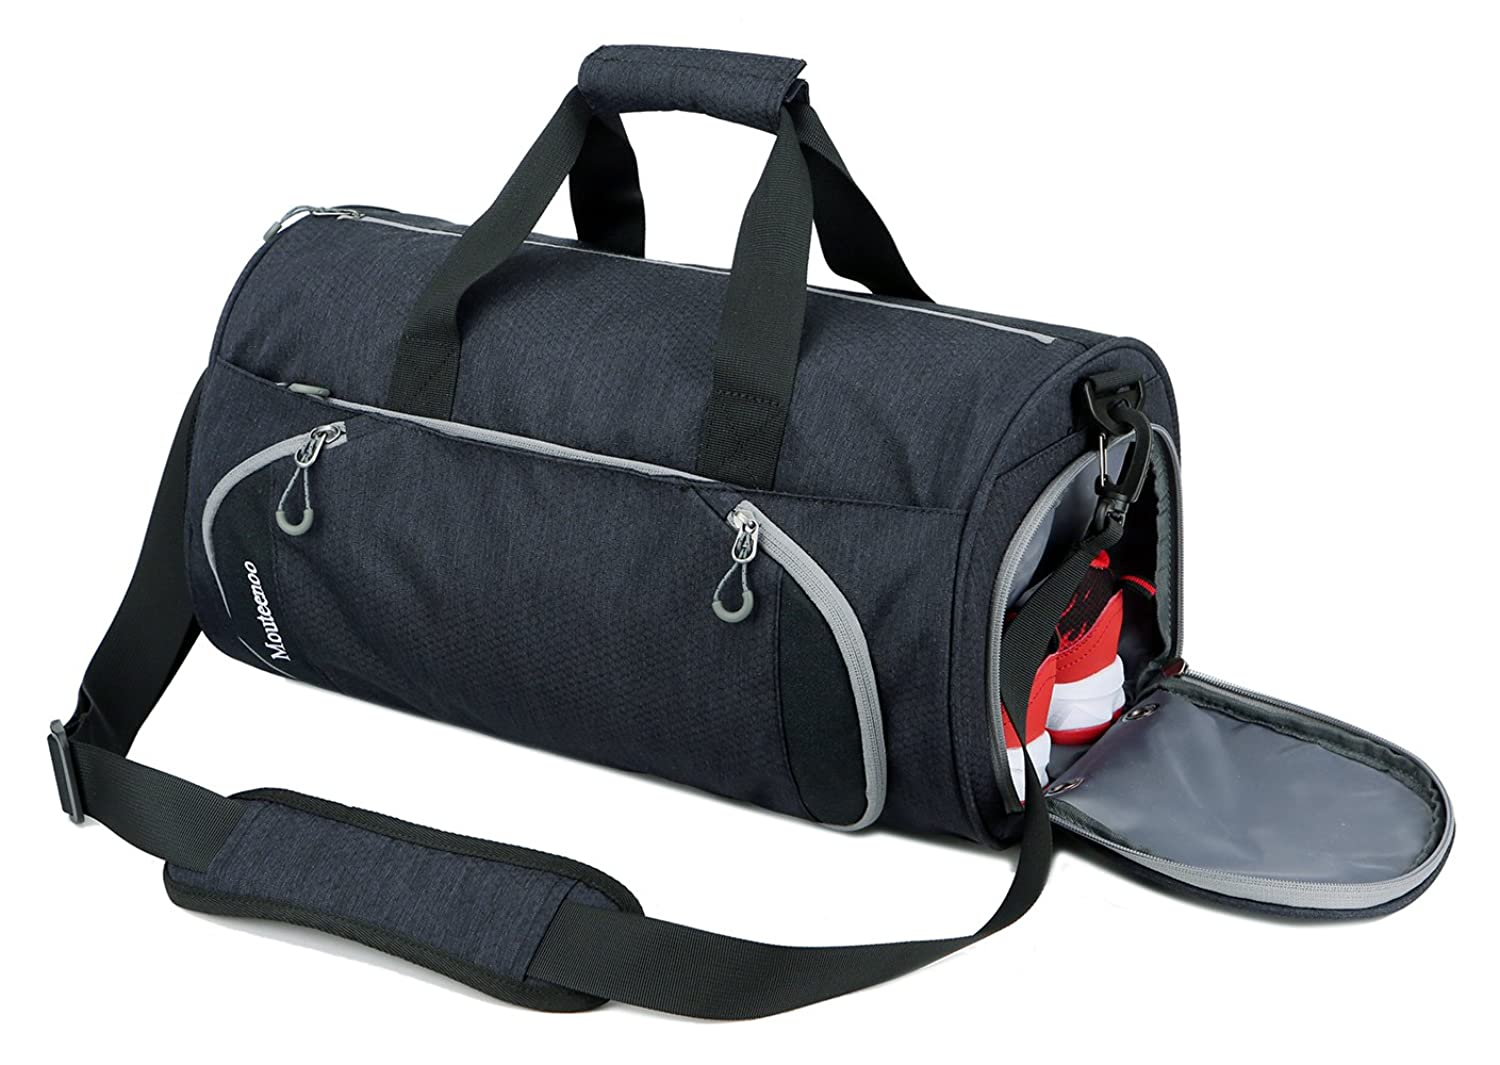 c667a2c8db2 Gym Sports Small Duffel Bag for Men and Women with Shoes Compartment -  Mouteenoo